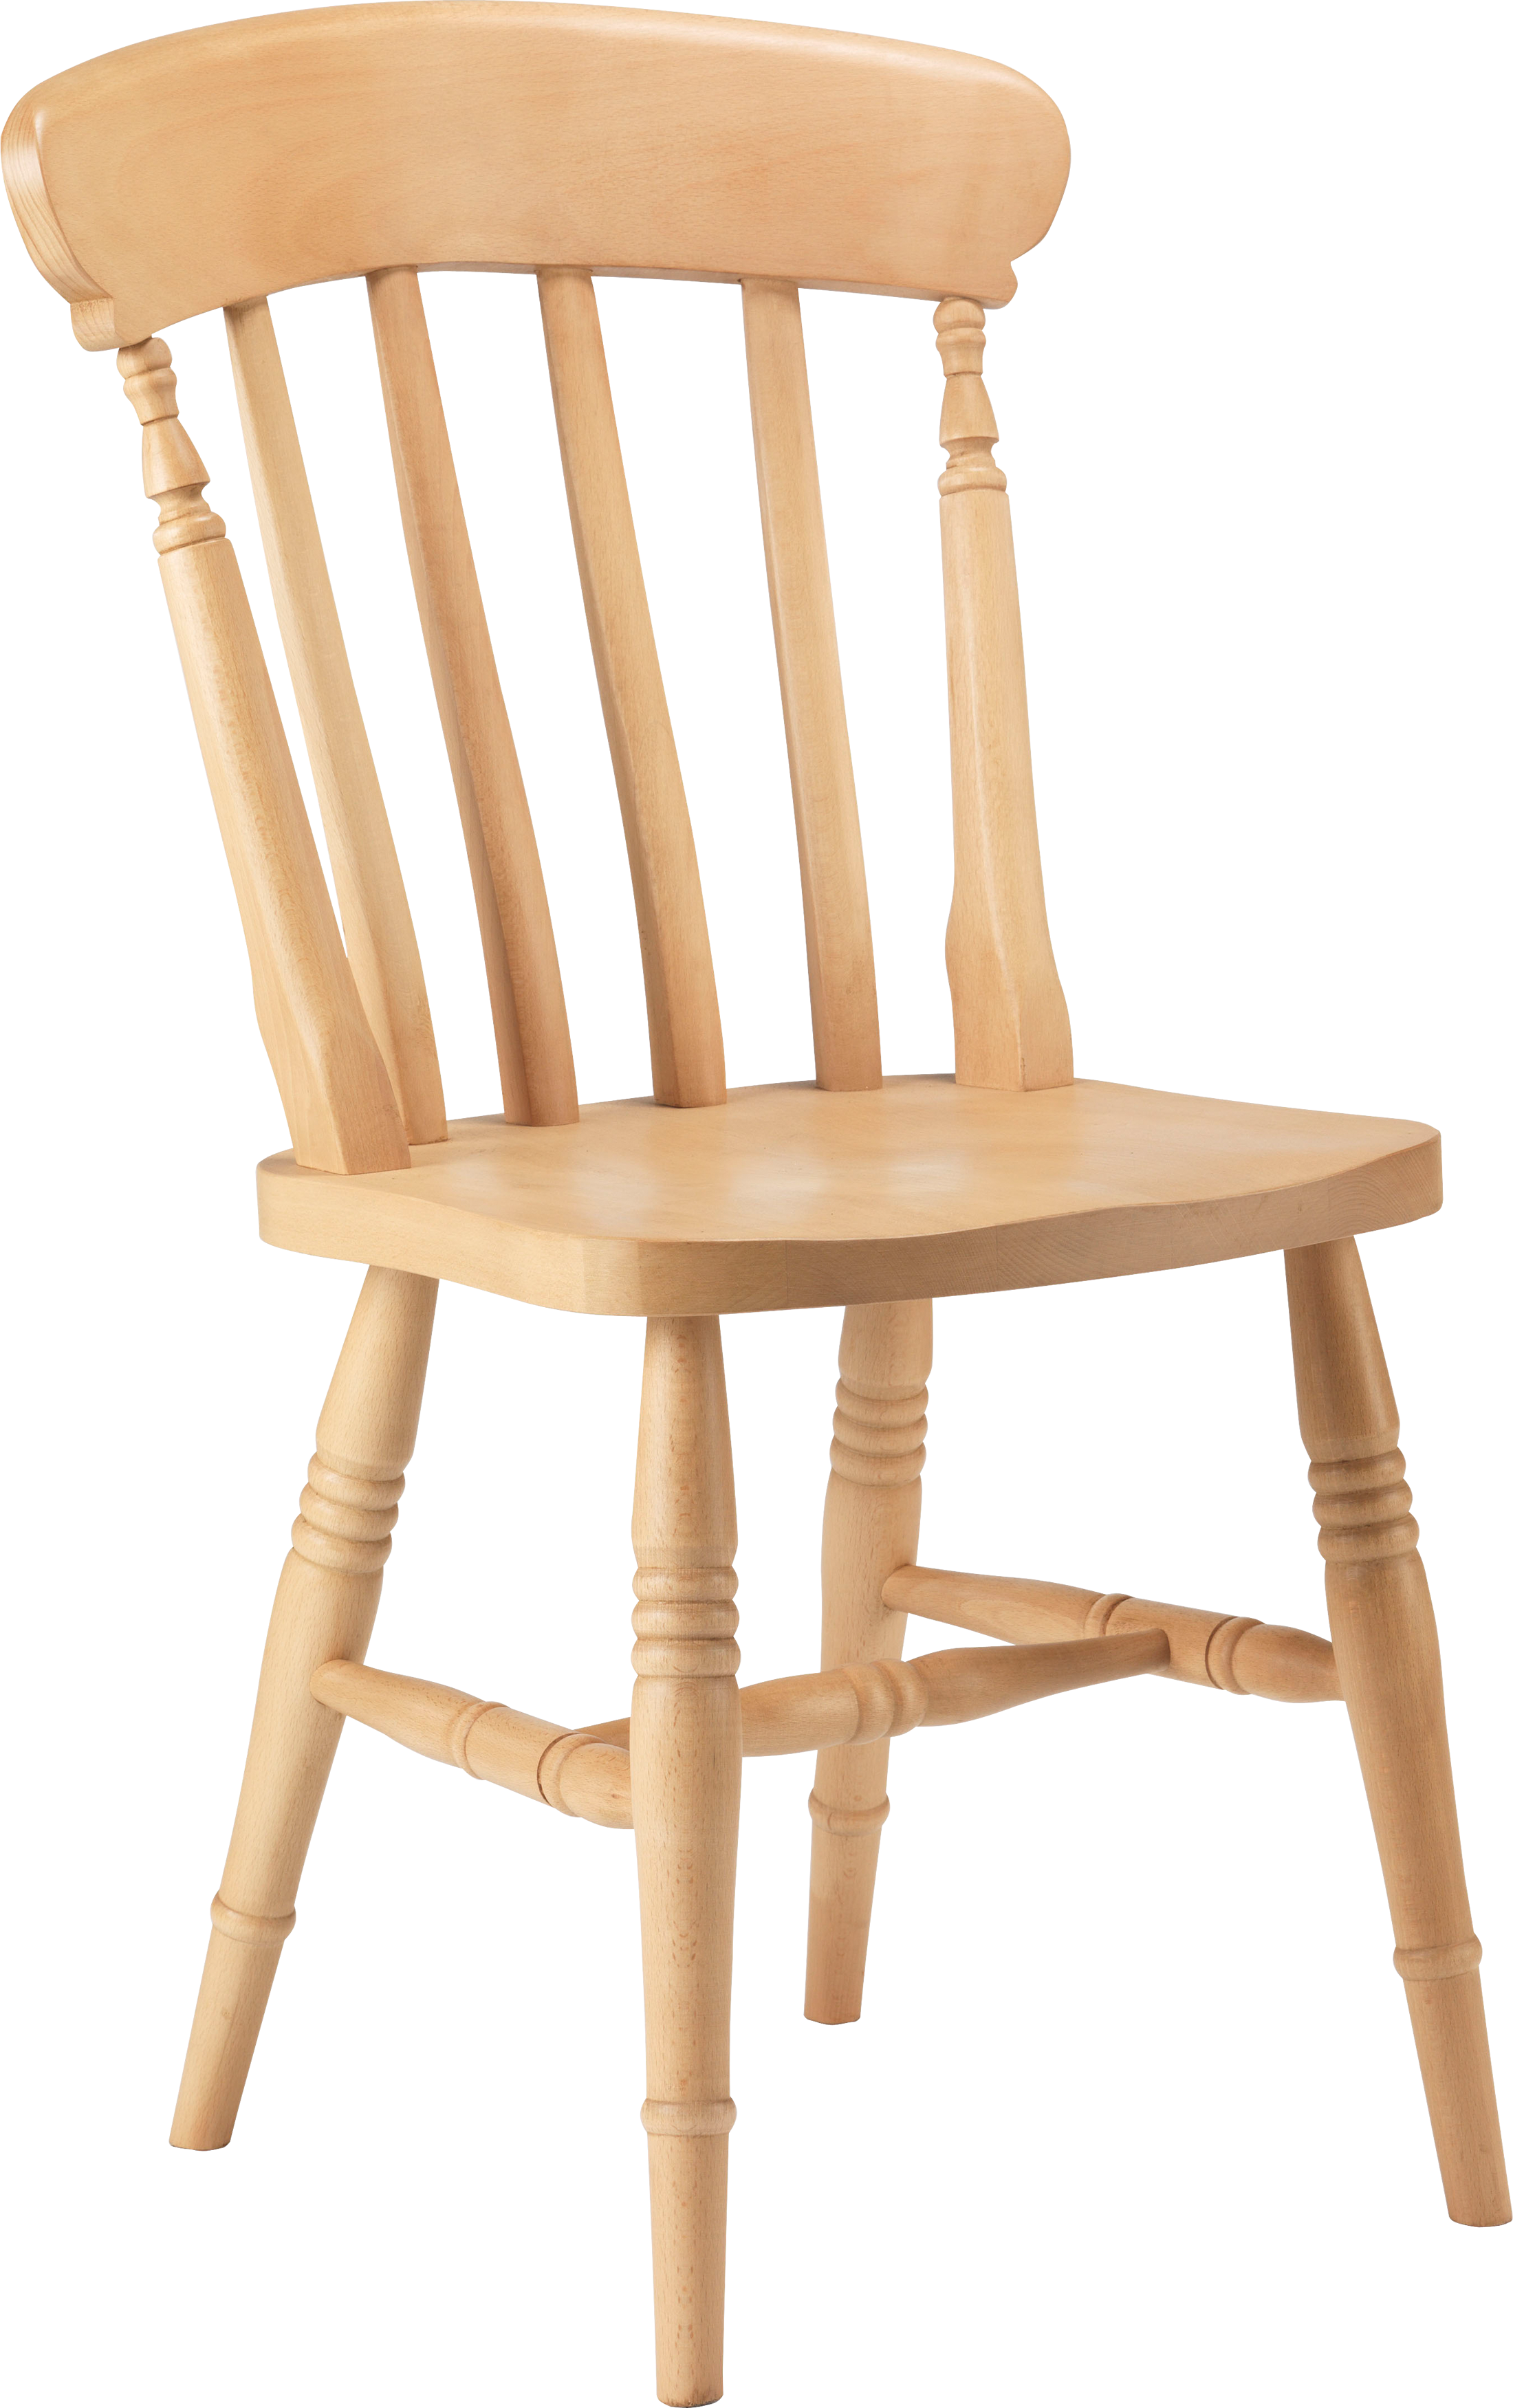 Chair png images free. Desk clipart meja